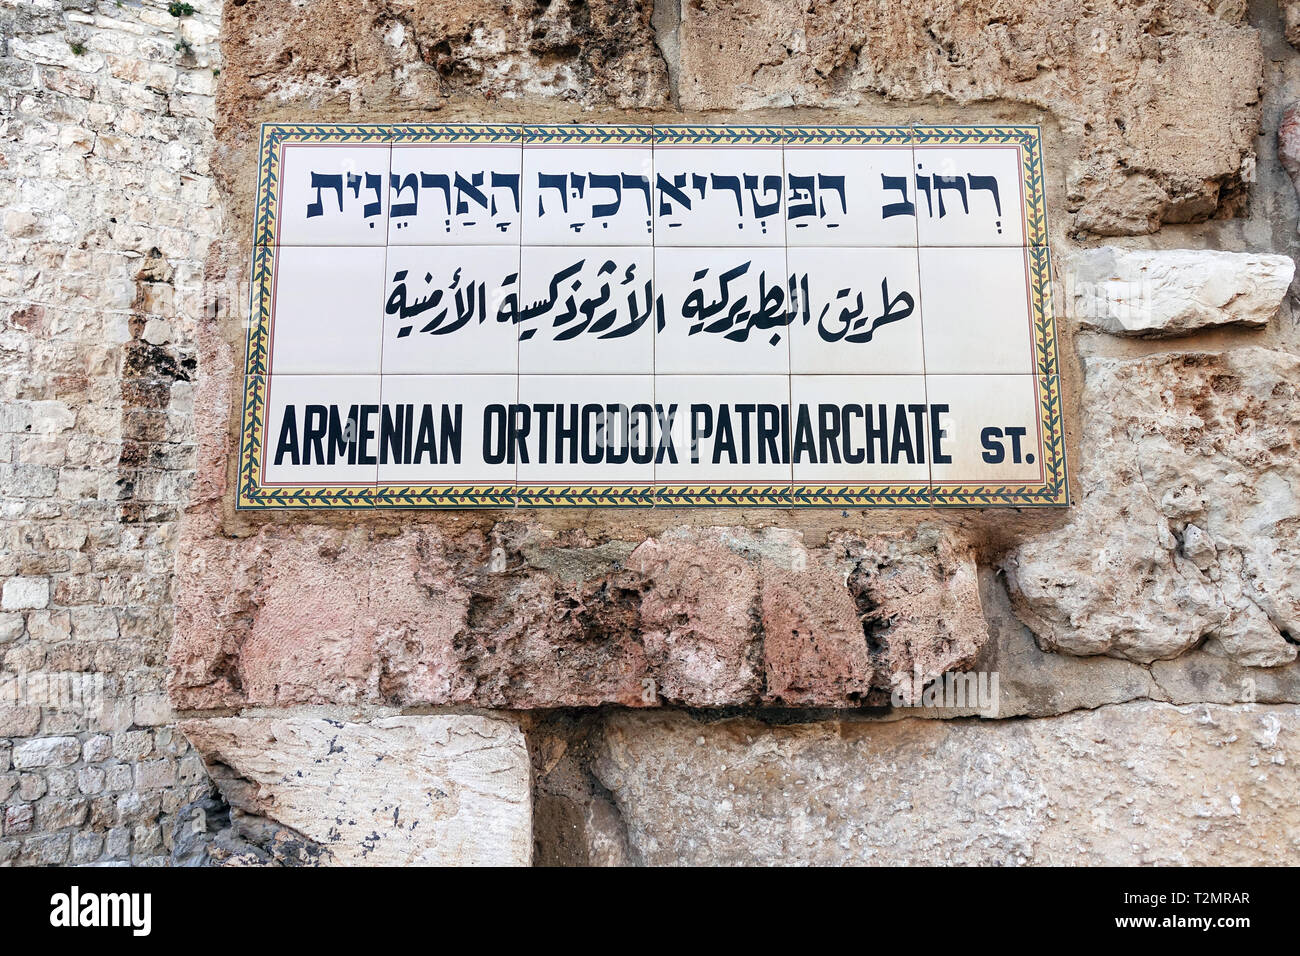 Armenian Orthodox Patriarchate Street sign - Stock Image